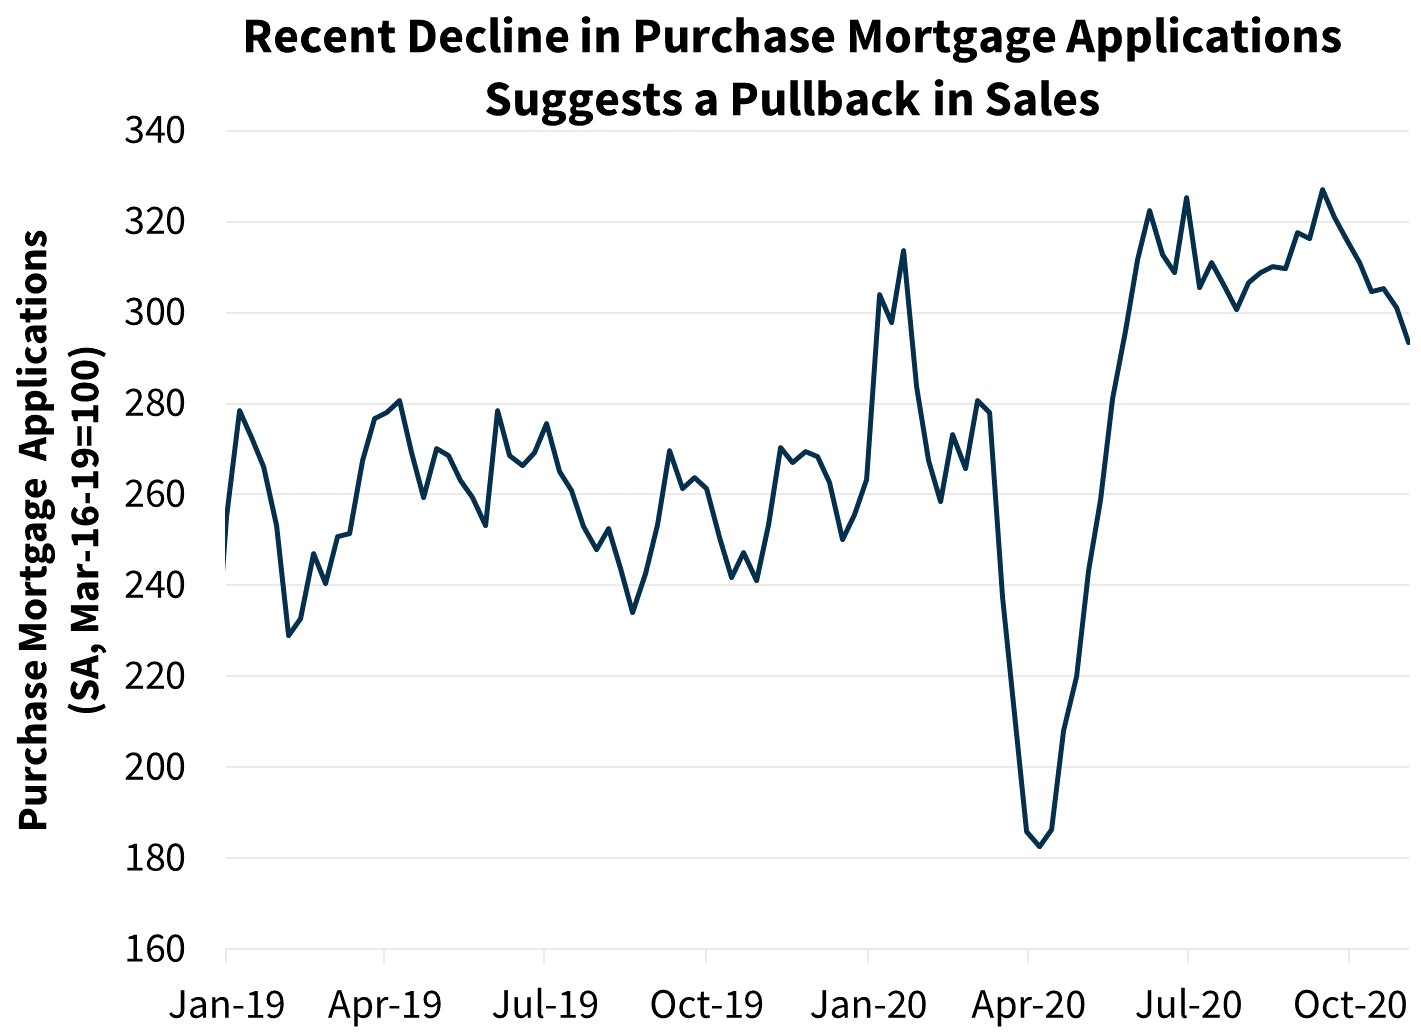 Recent Decline in Purchase Mortgage Applications Suggests a Pullback in Sales